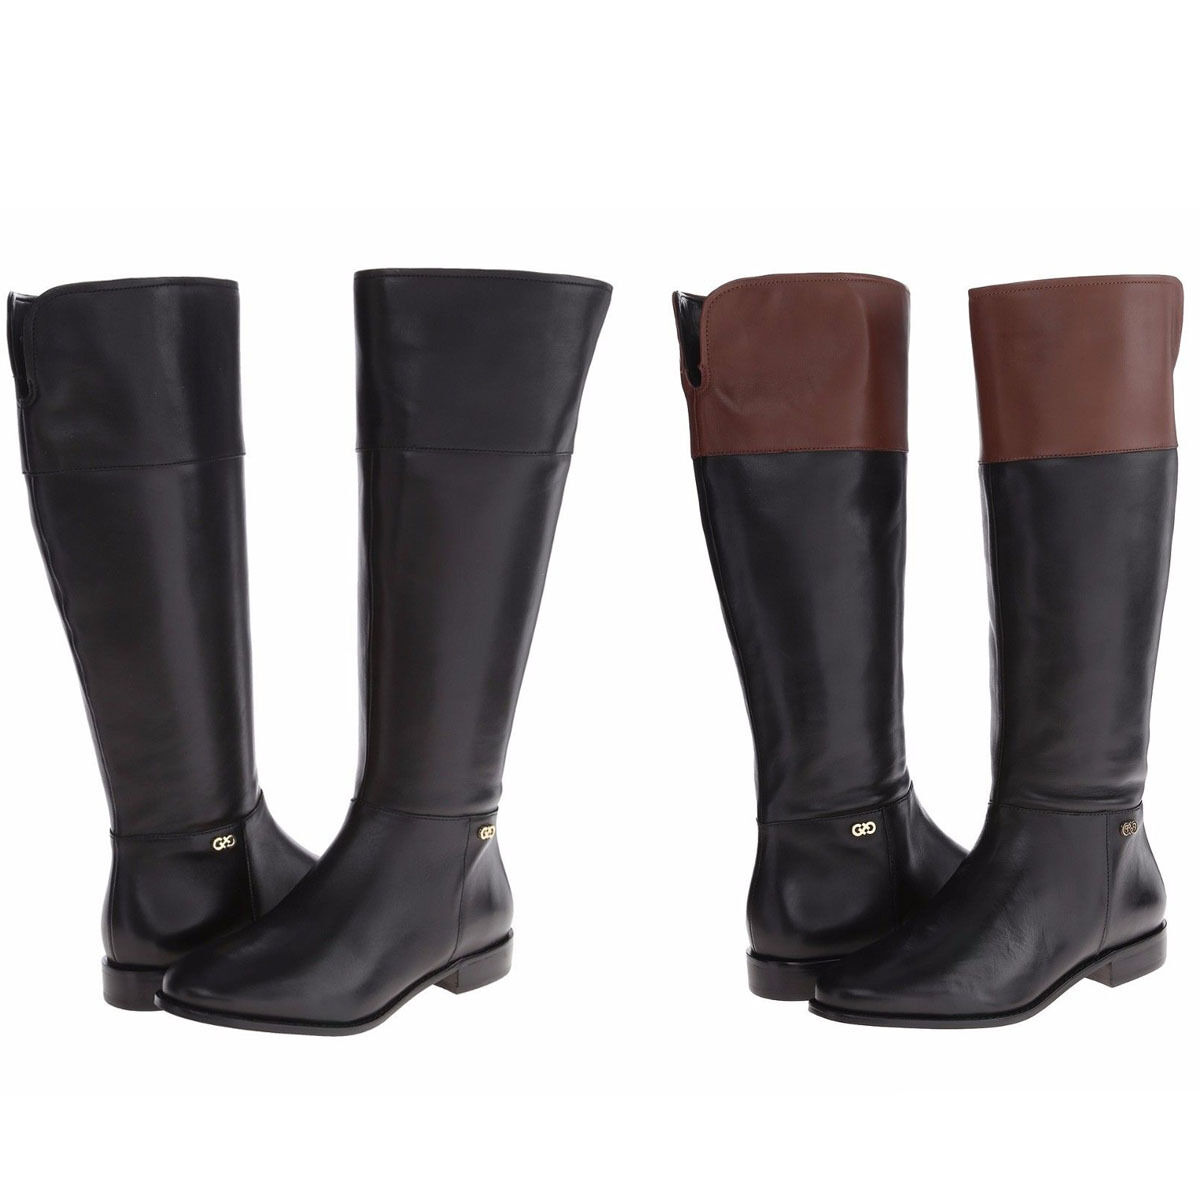 Cole Haan Womens Primpink Riding Side Zip Casual Knee High Tall Fashion Boots